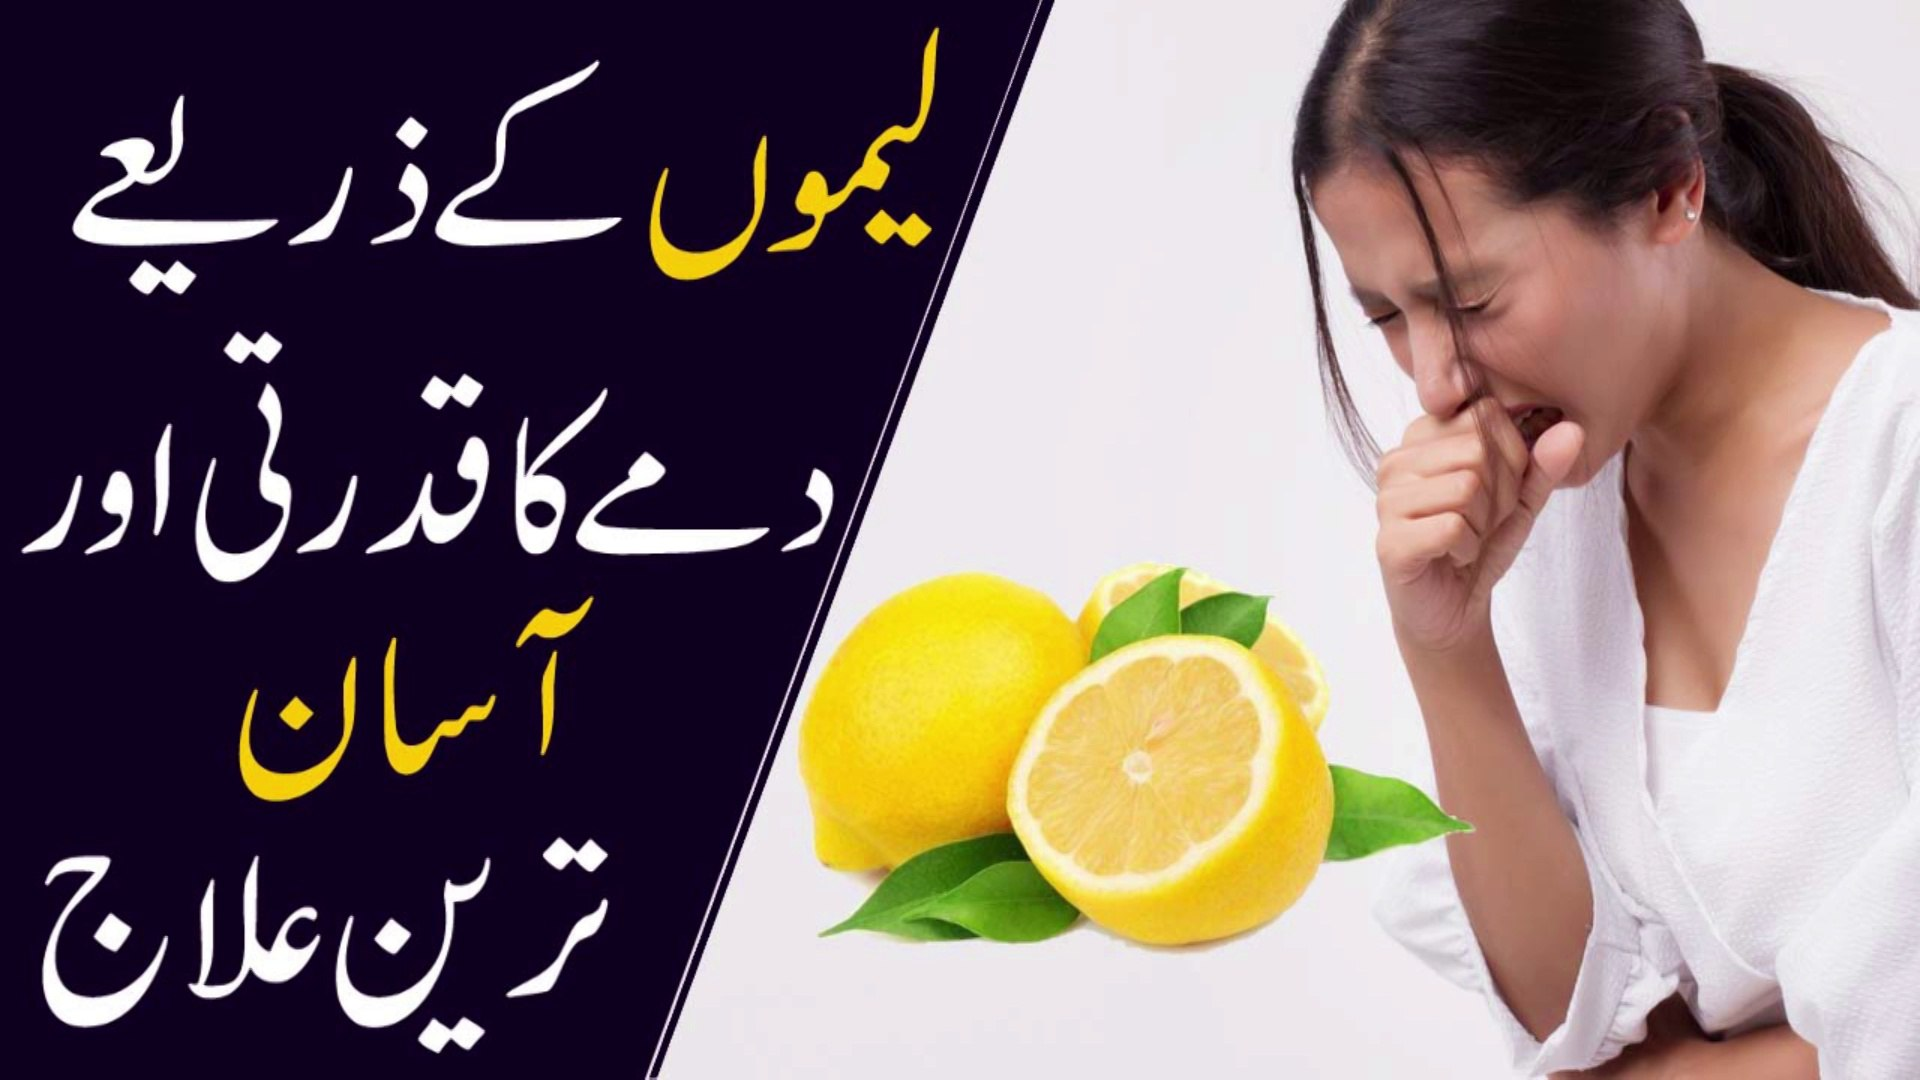 What To Do During An Asthma Attack || Asthma Treatment At Home || دمہ کا جڑ سے خاتمہ